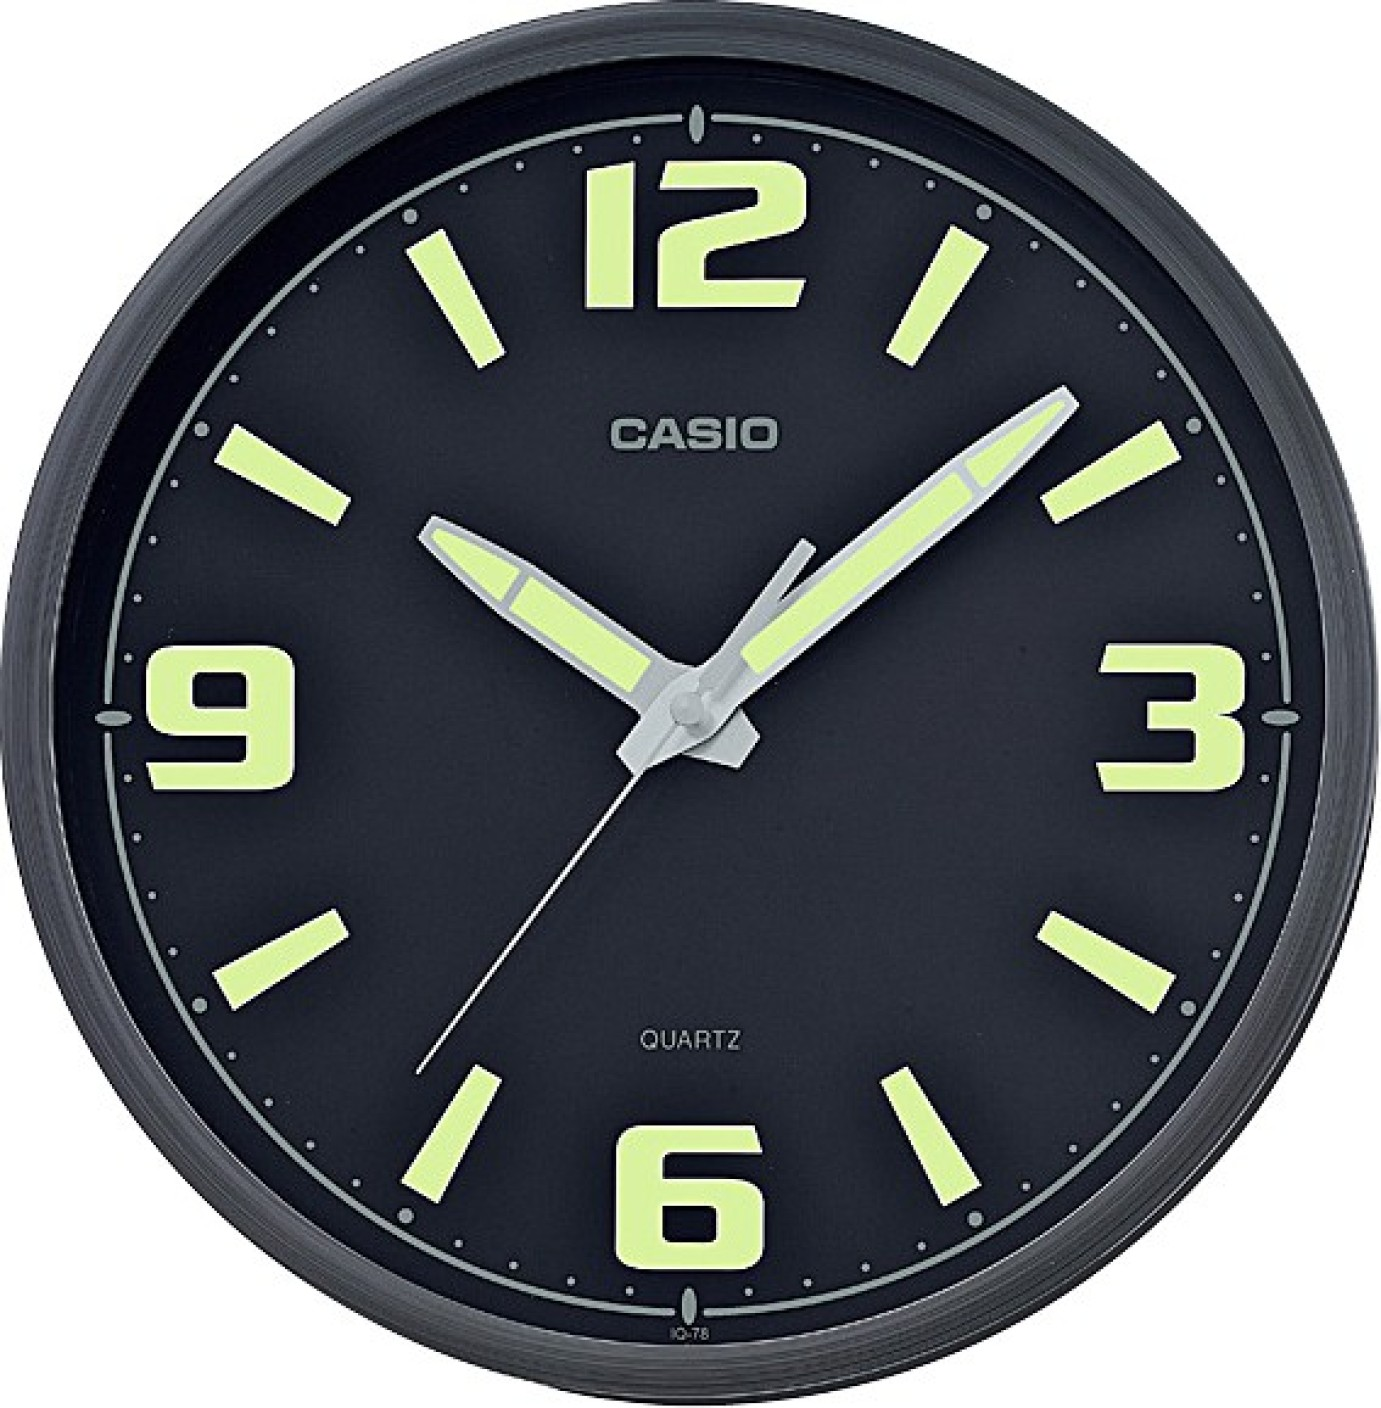 Casio wall clock online image collections home wall decoration ideas casio analog wall clock price in india buy casio analog wall casio analog wall clock wishlist amipublicfo Choice Image